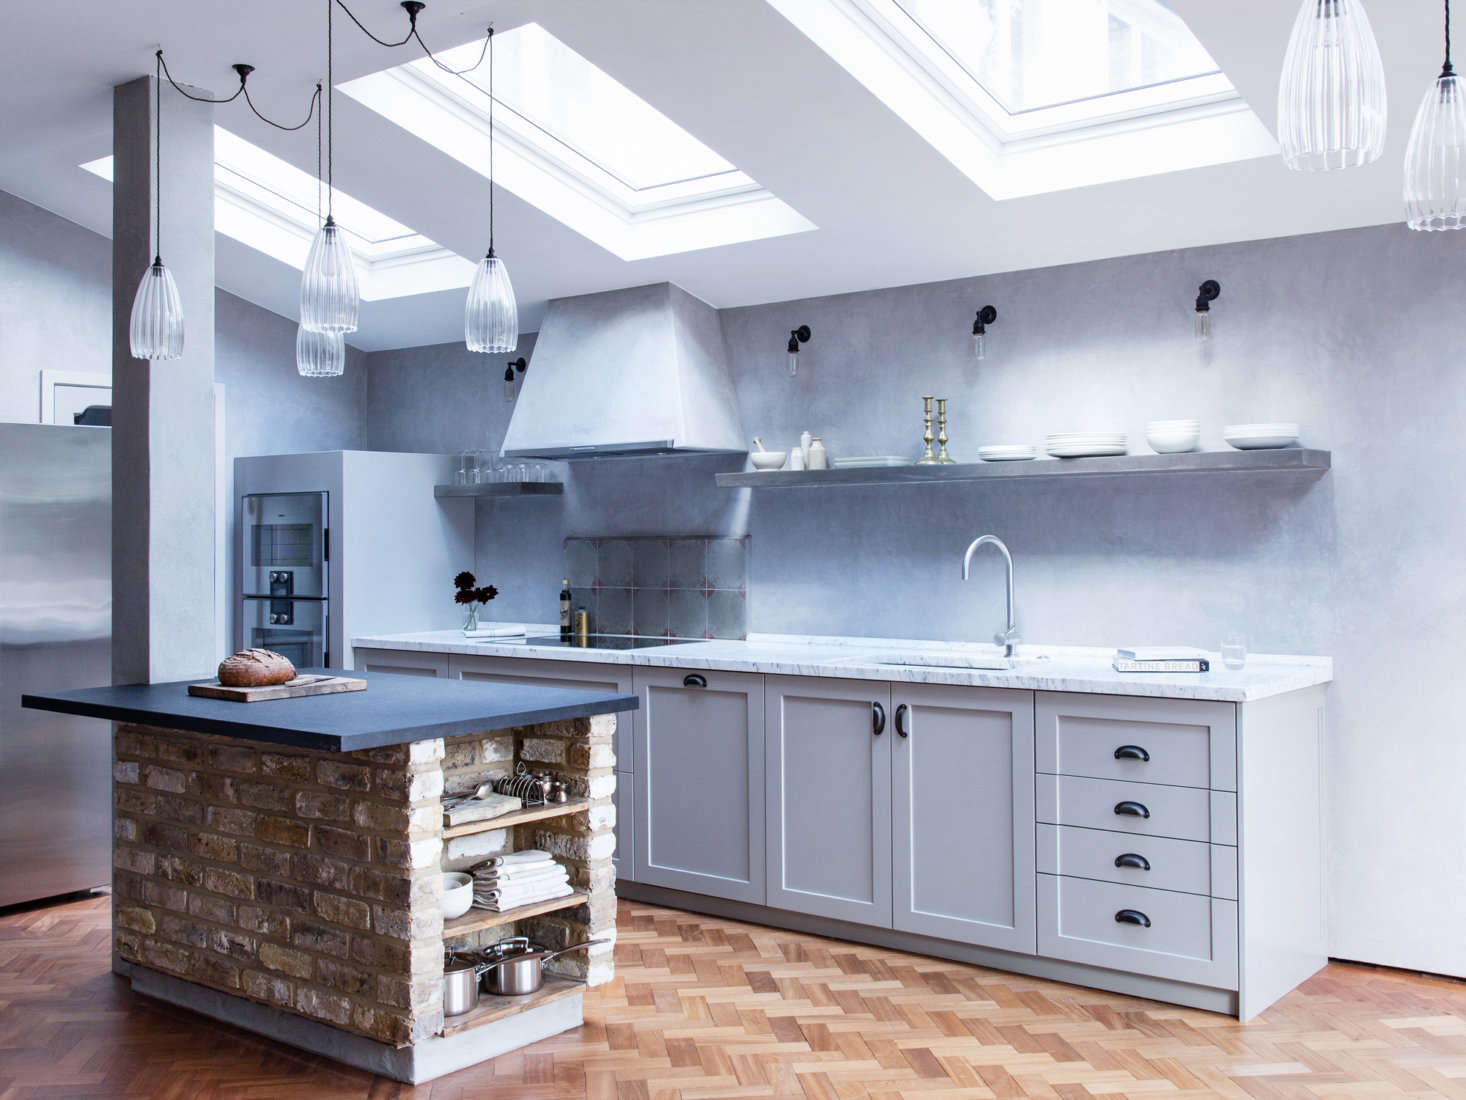 A clever use of interior brick: A kitchen island that references an indoor fireplace or pizza oven.